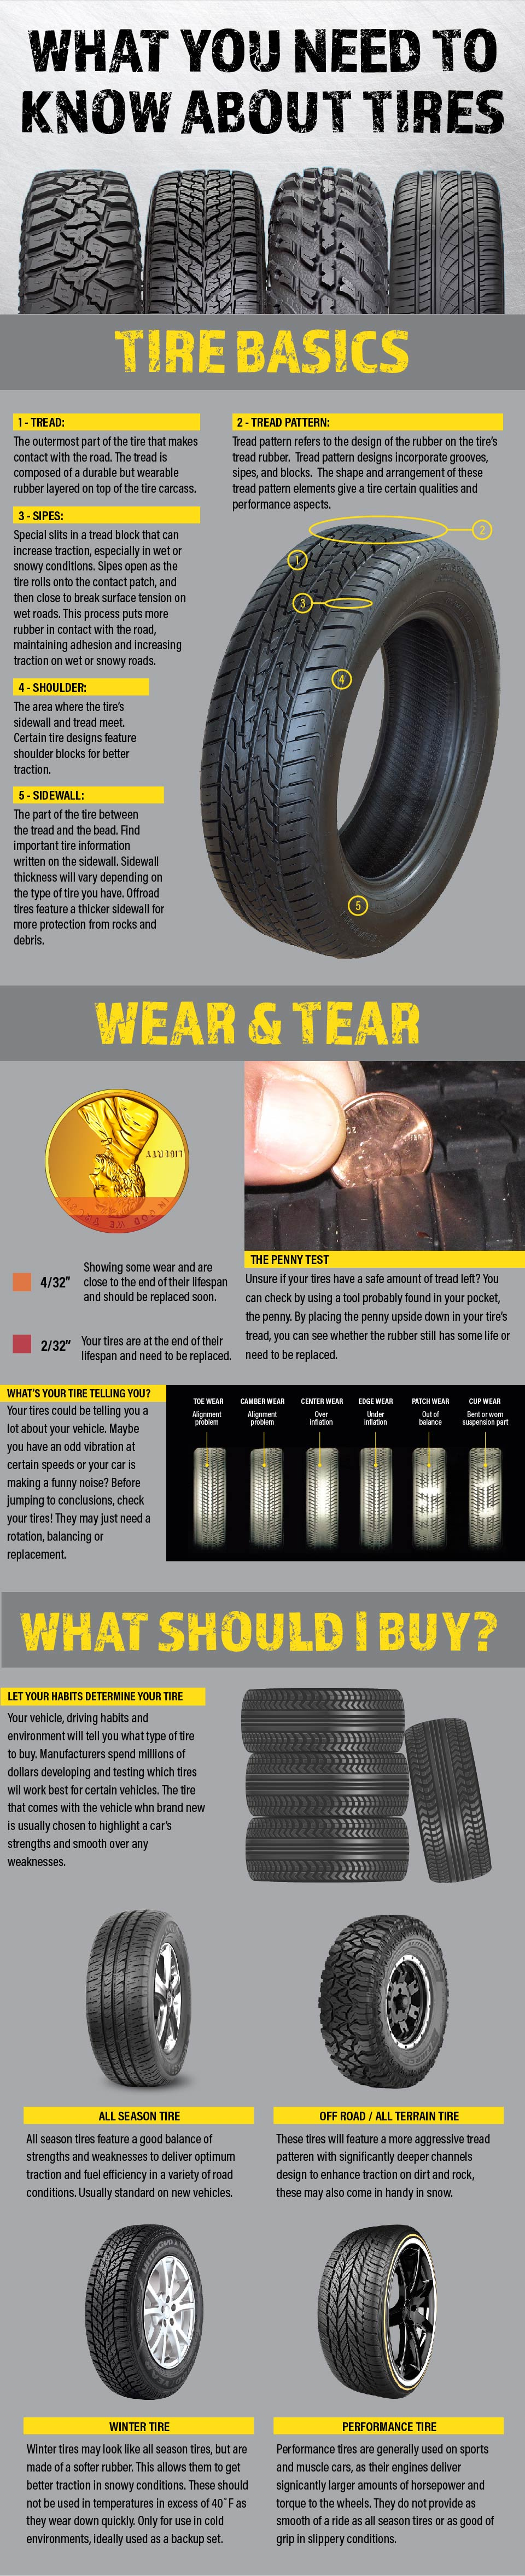 car tire facts infographic